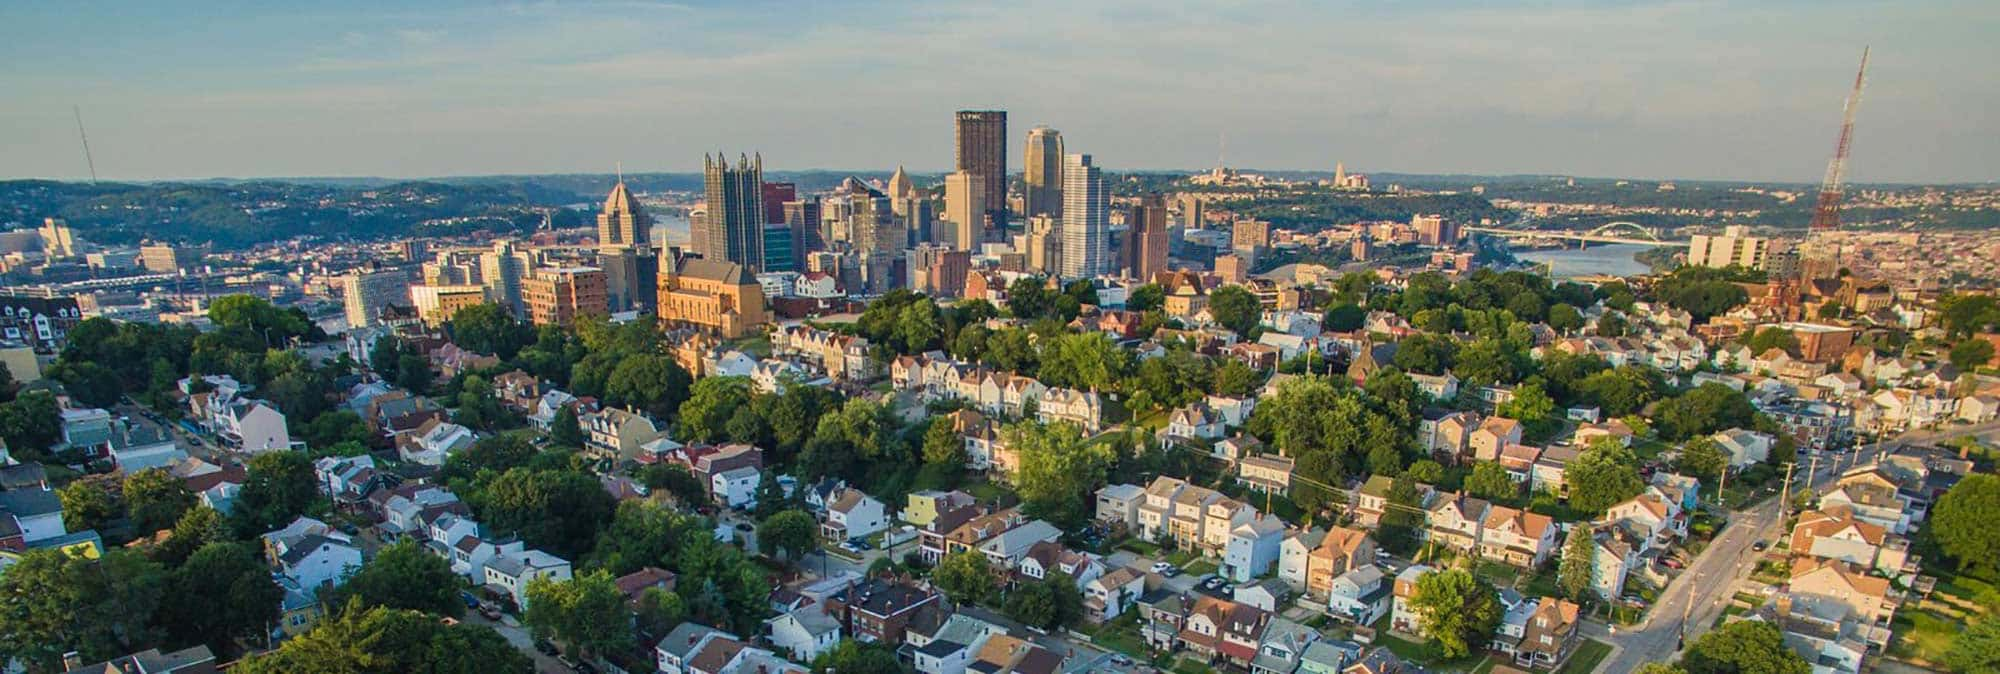 City of Pittsburgh - Announcements, Special Events, Press